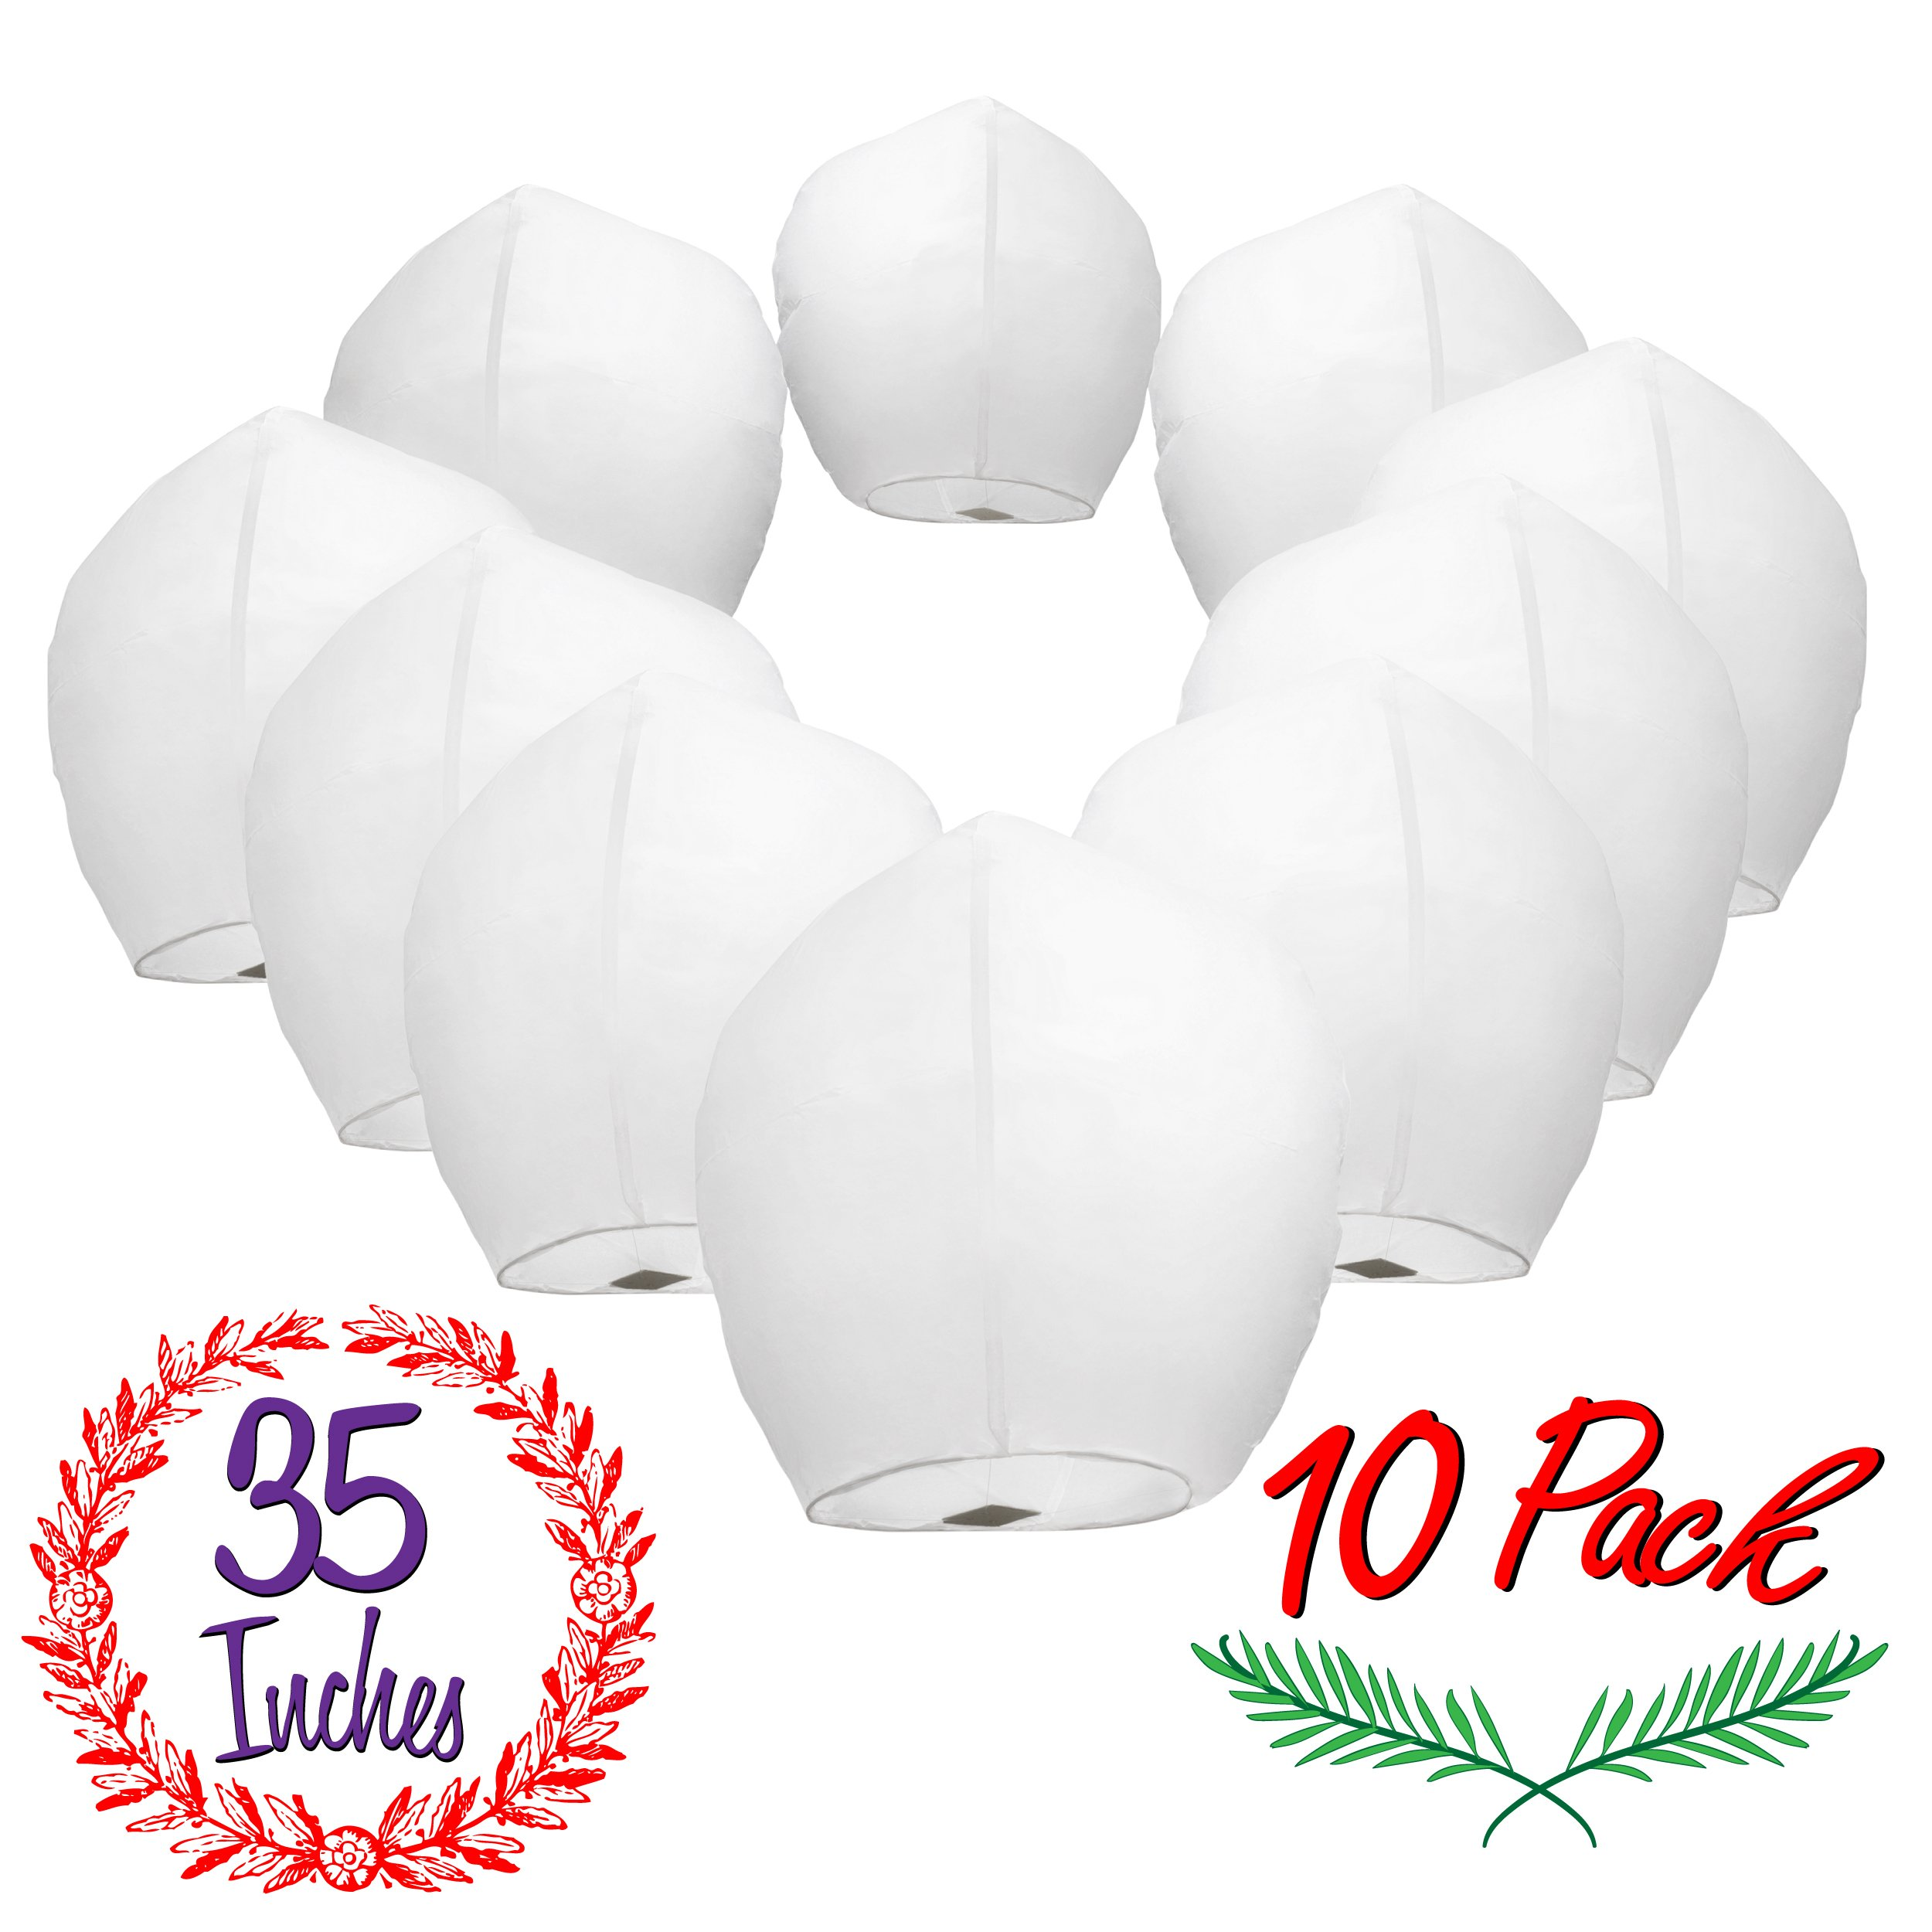 Chinese Sky Lanterns White Paper (10) Pack - Ready to Use and Eco Friendly - Extra Large - 100% Biodegradable - Beautiful Night Sky Lantern for Weddings, Chinese Festival, Memorials, etc. by Gracie's Goods